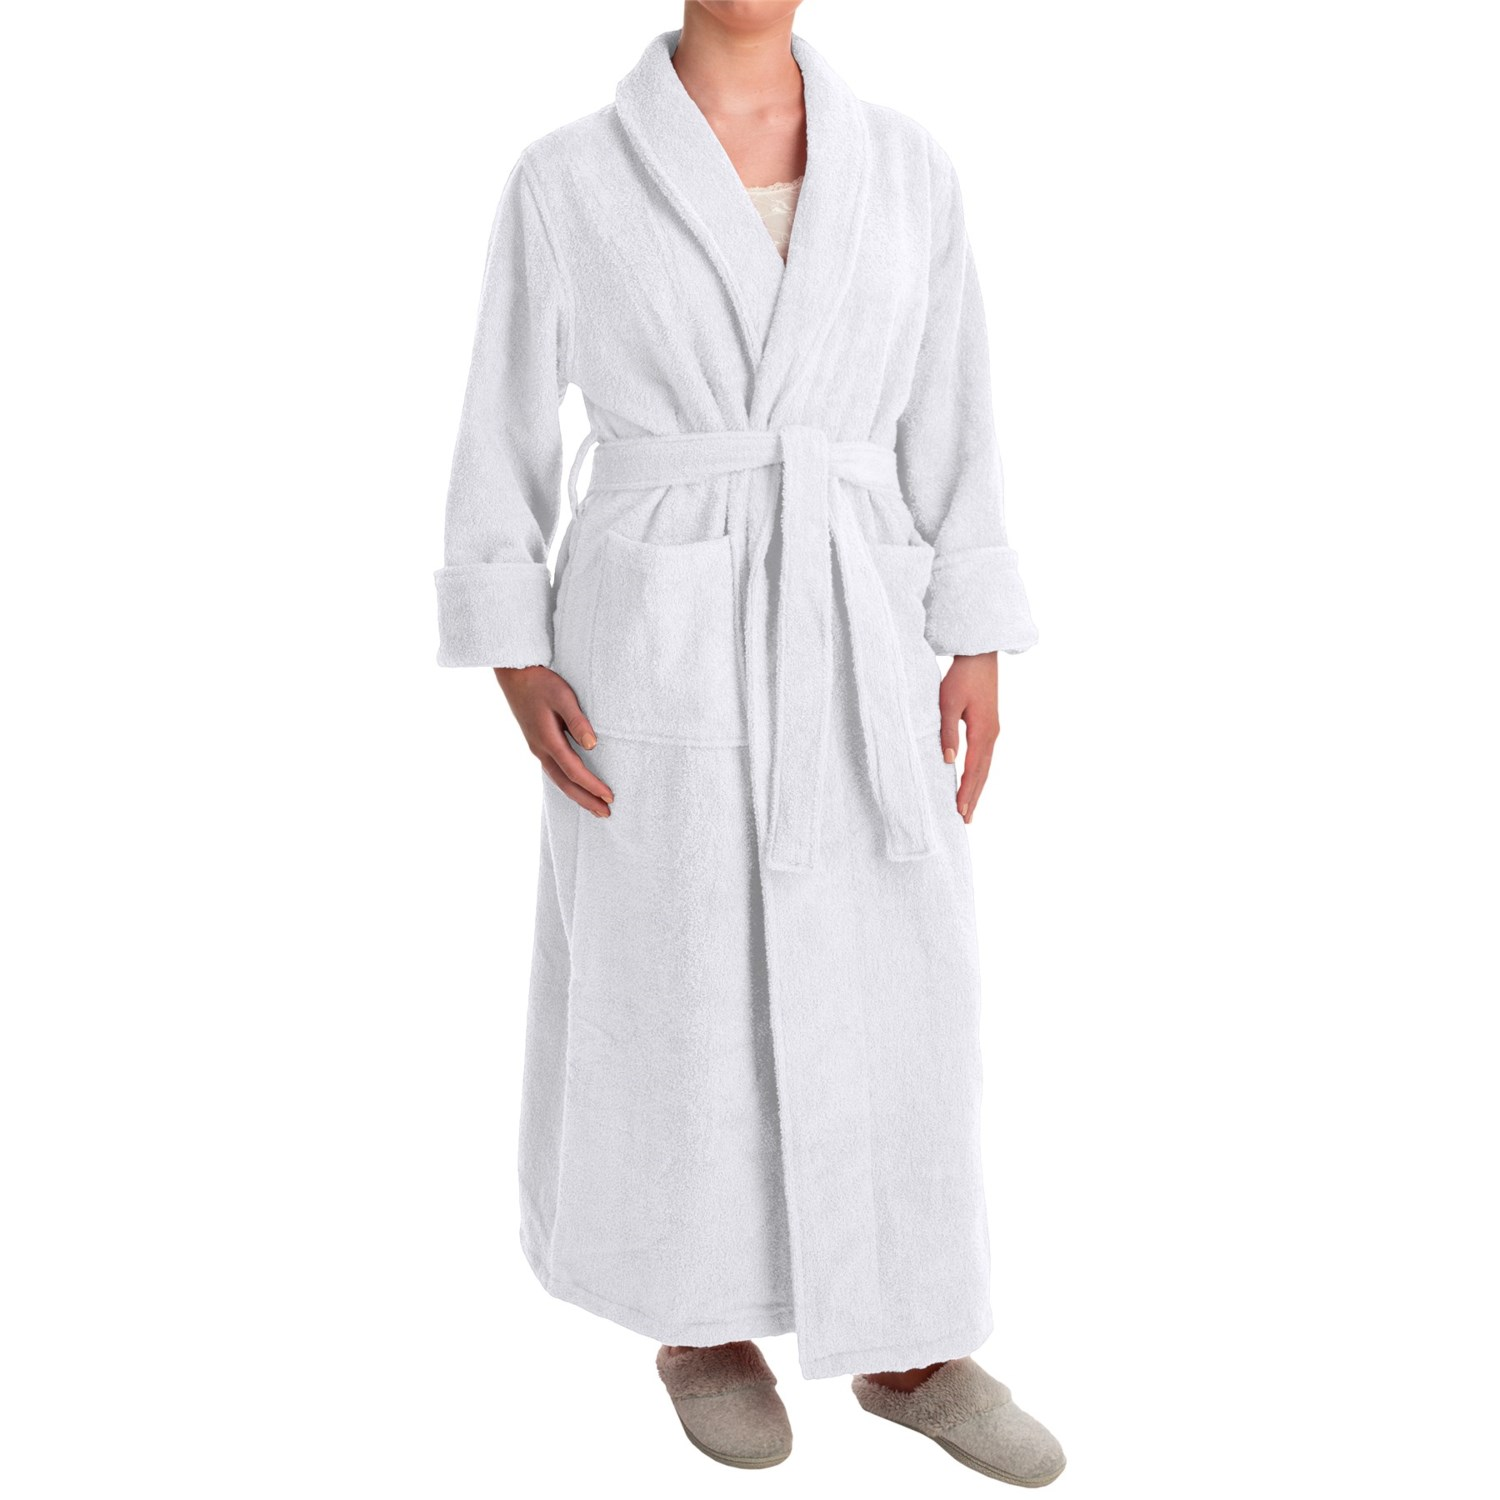 Terry cloth robe for women